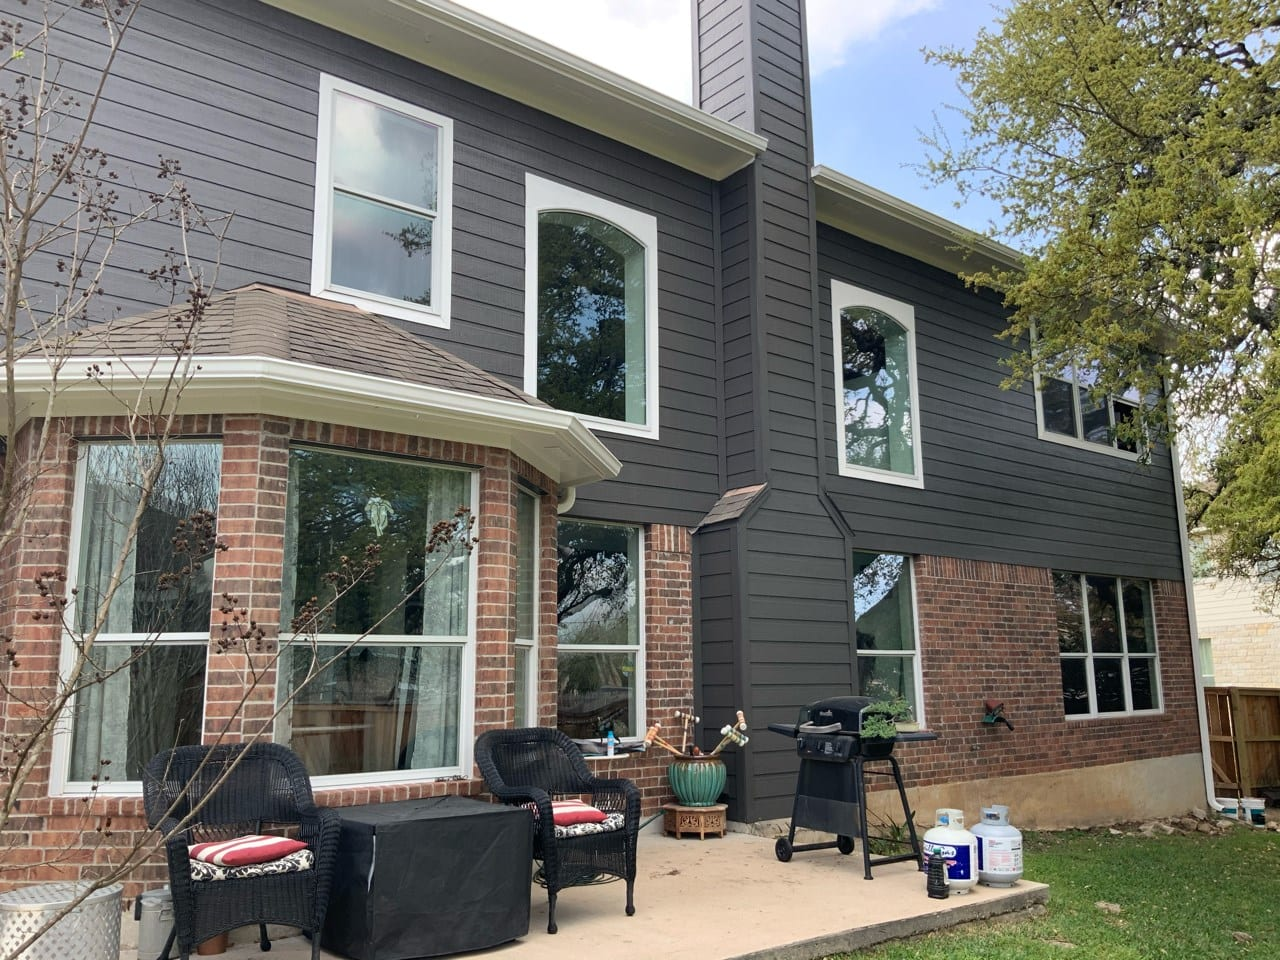 rear view red brick home with dark painted siding